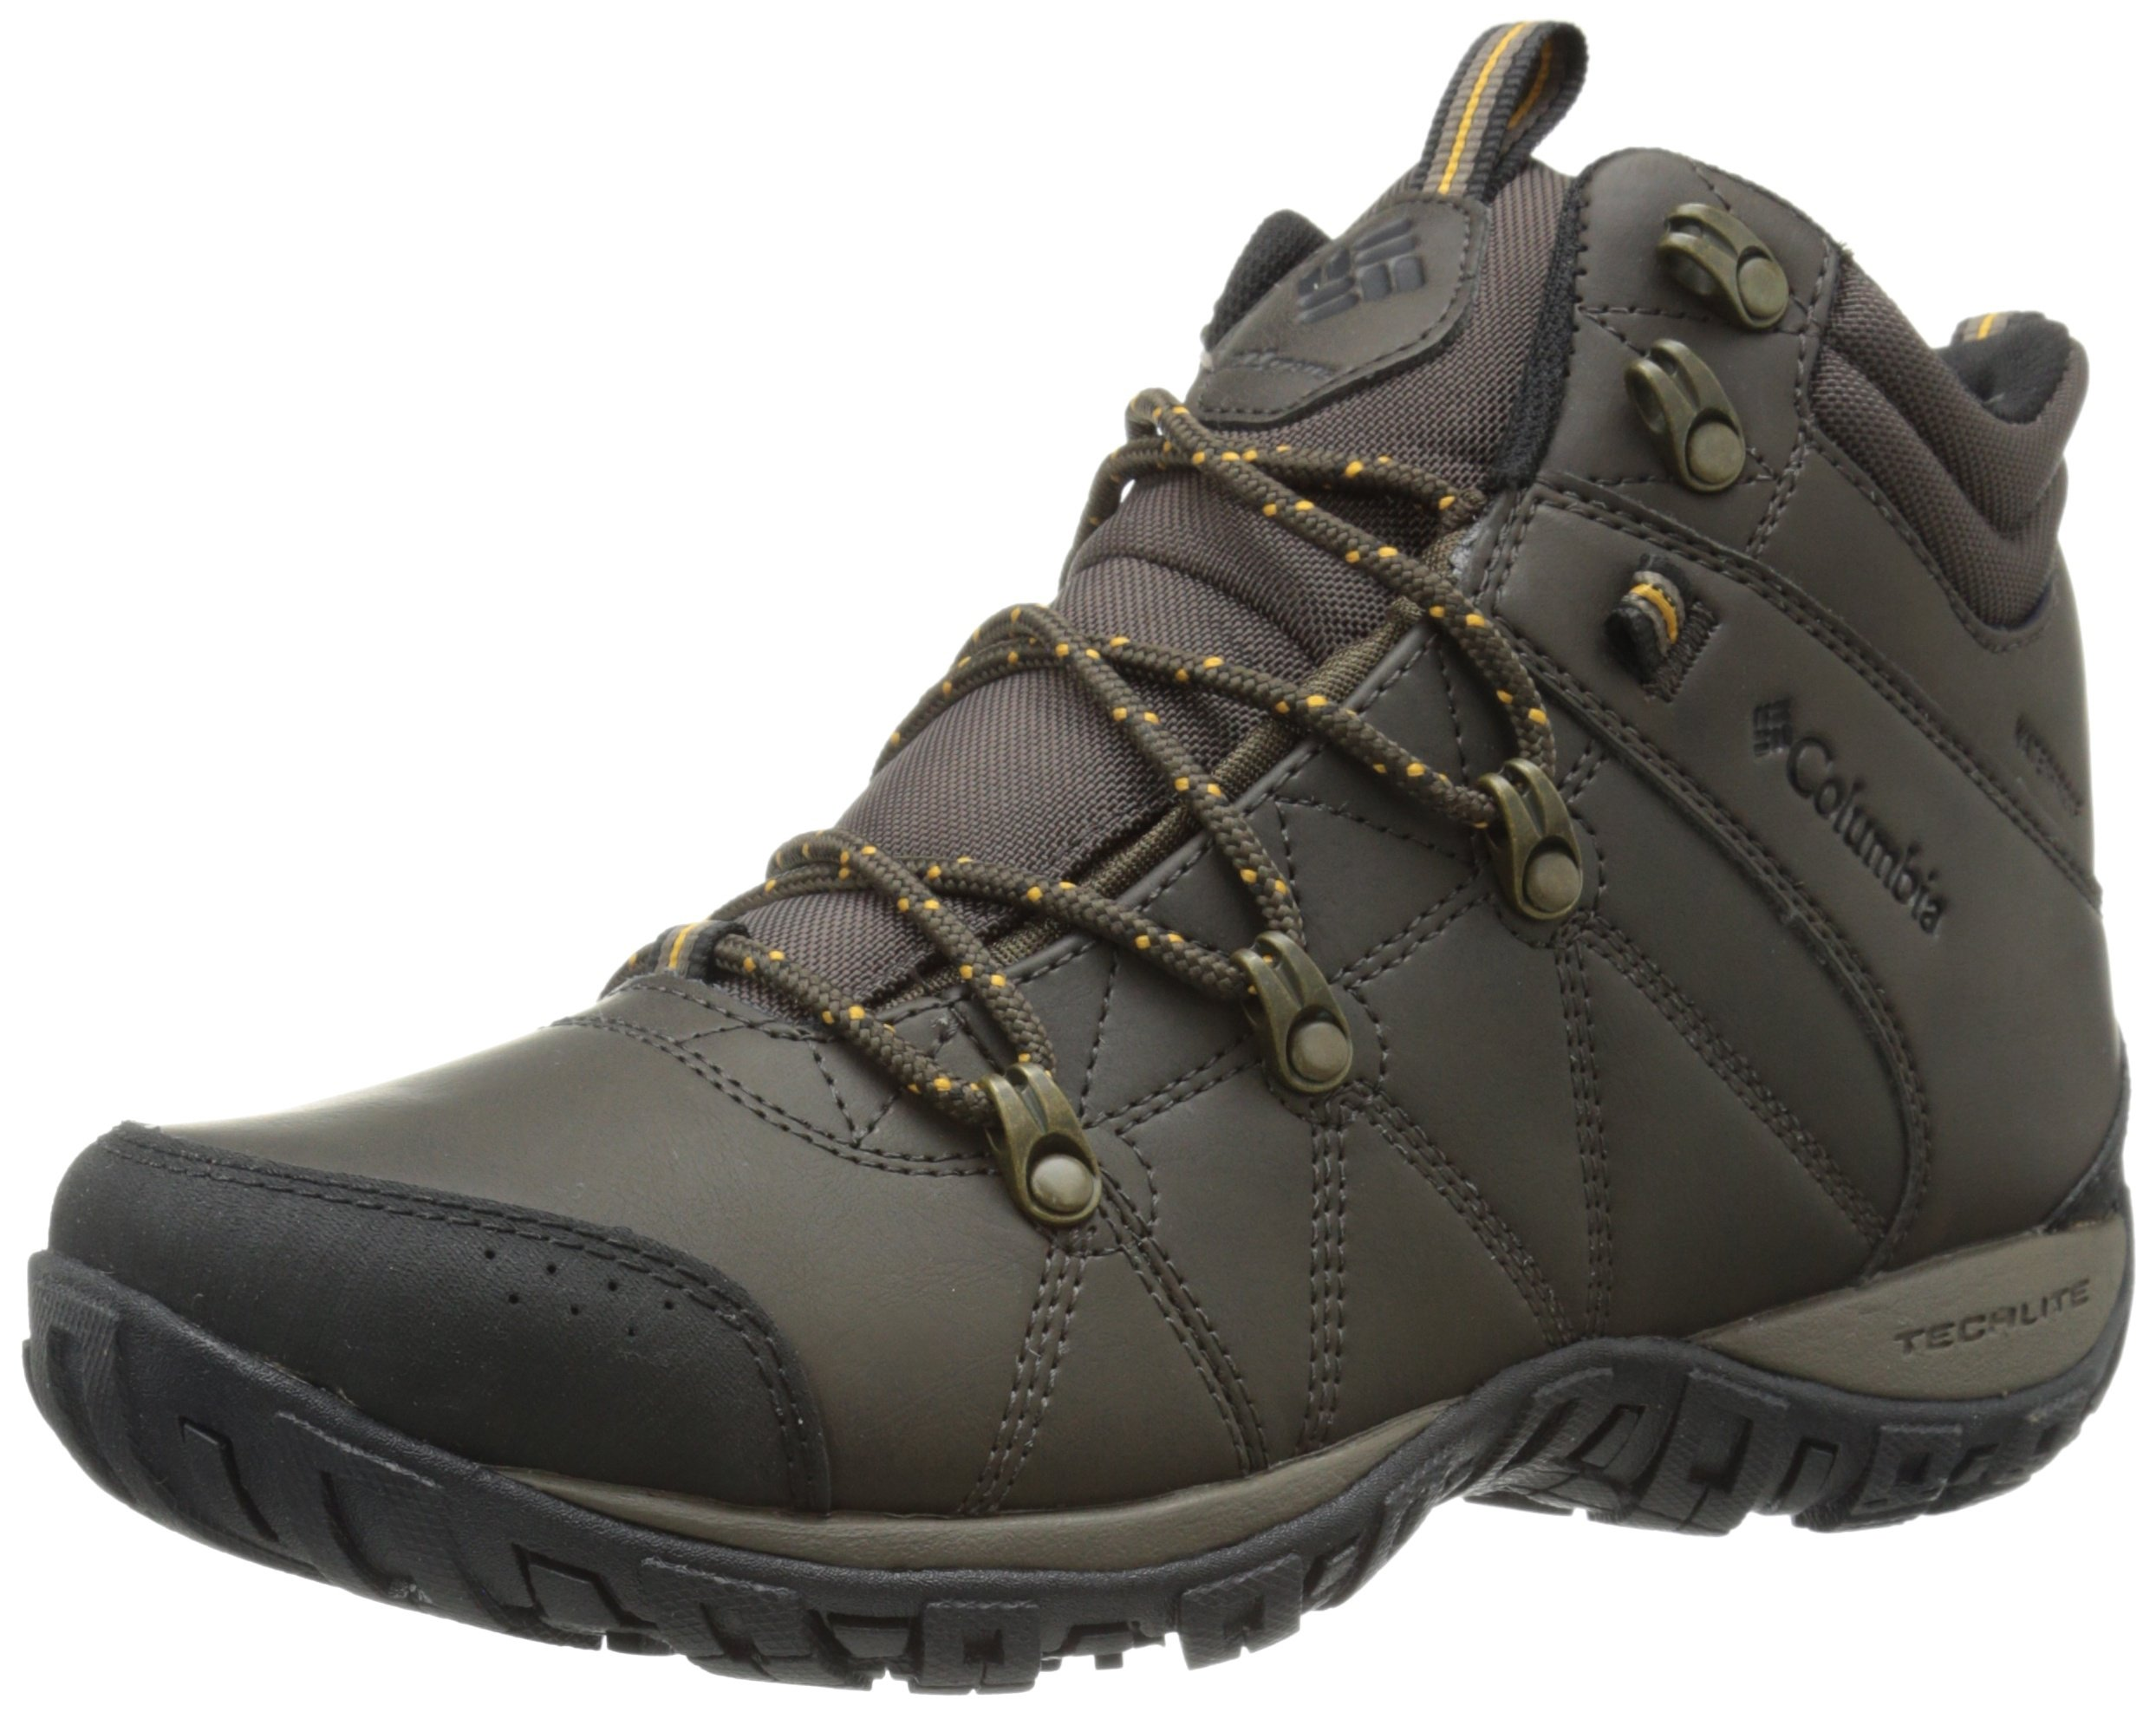 Columbia Men's Peakfreak Venture Mid Waterproof Omni-heat Hiking Boot, Cordovan, Caramel, 9.5 D US